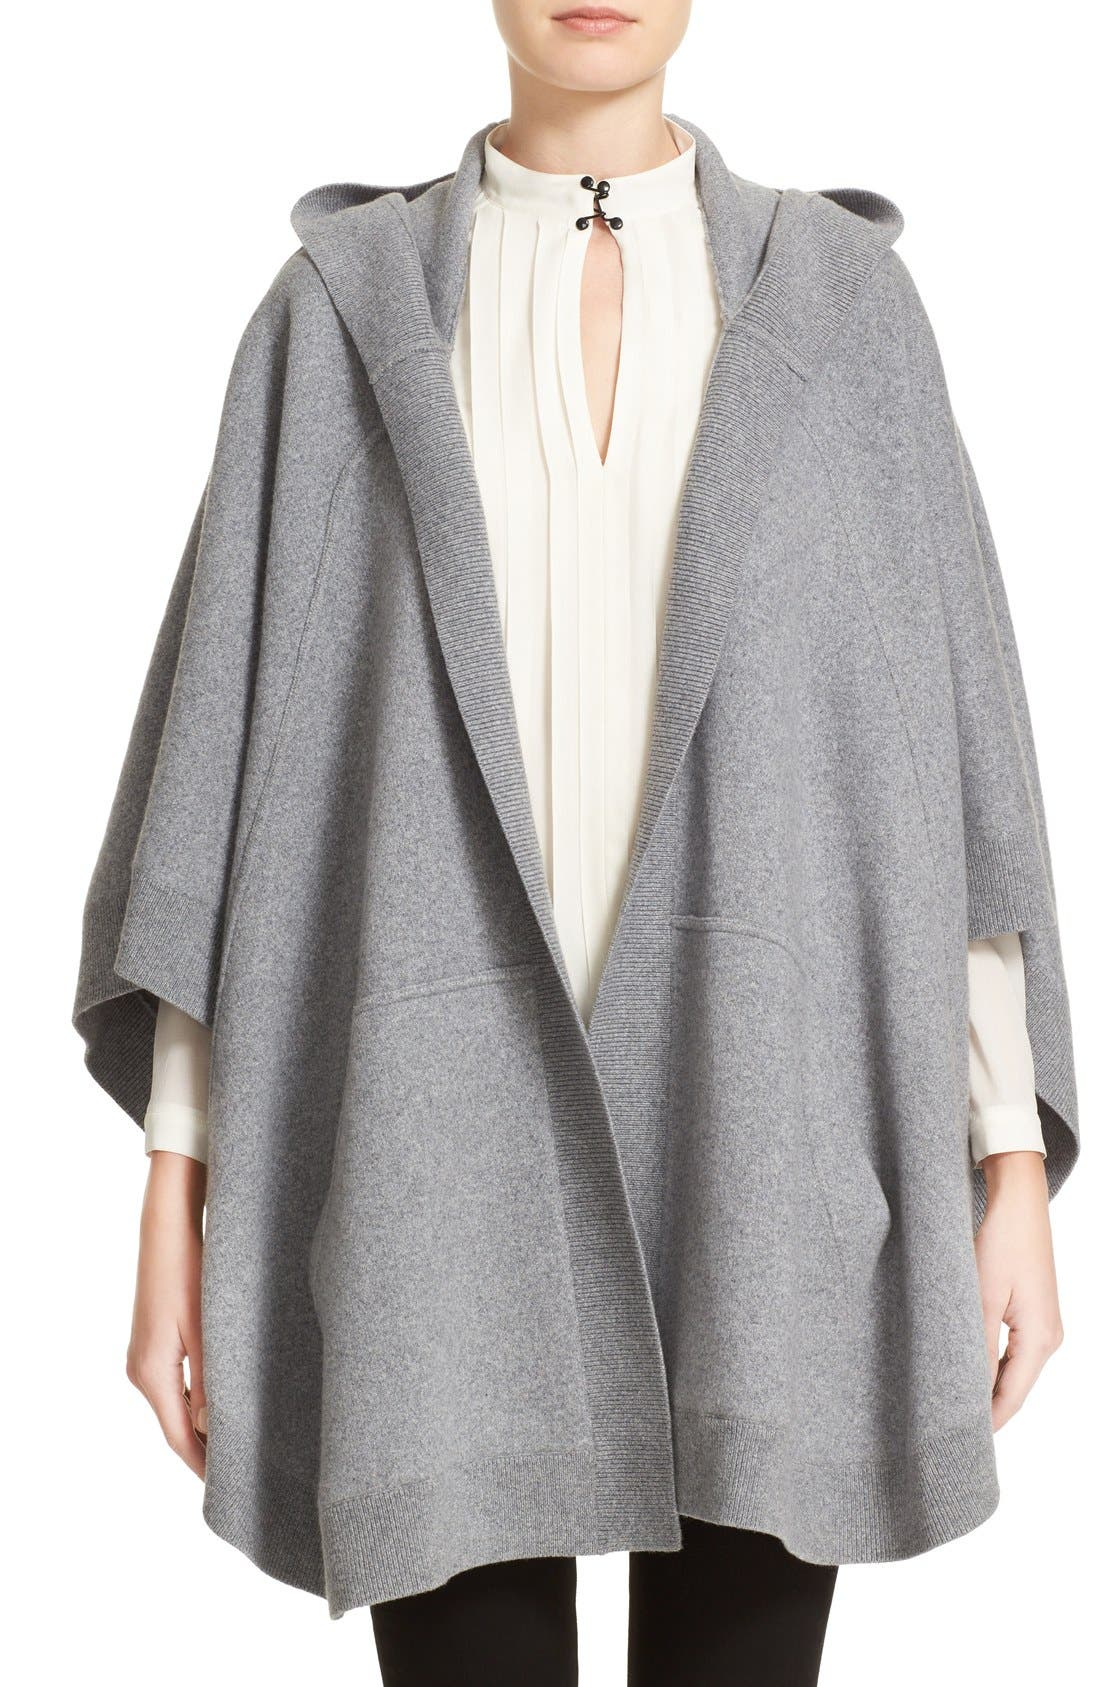 Alternate Image 1 Selected - Burberry Carla Hooded Knit Poncho